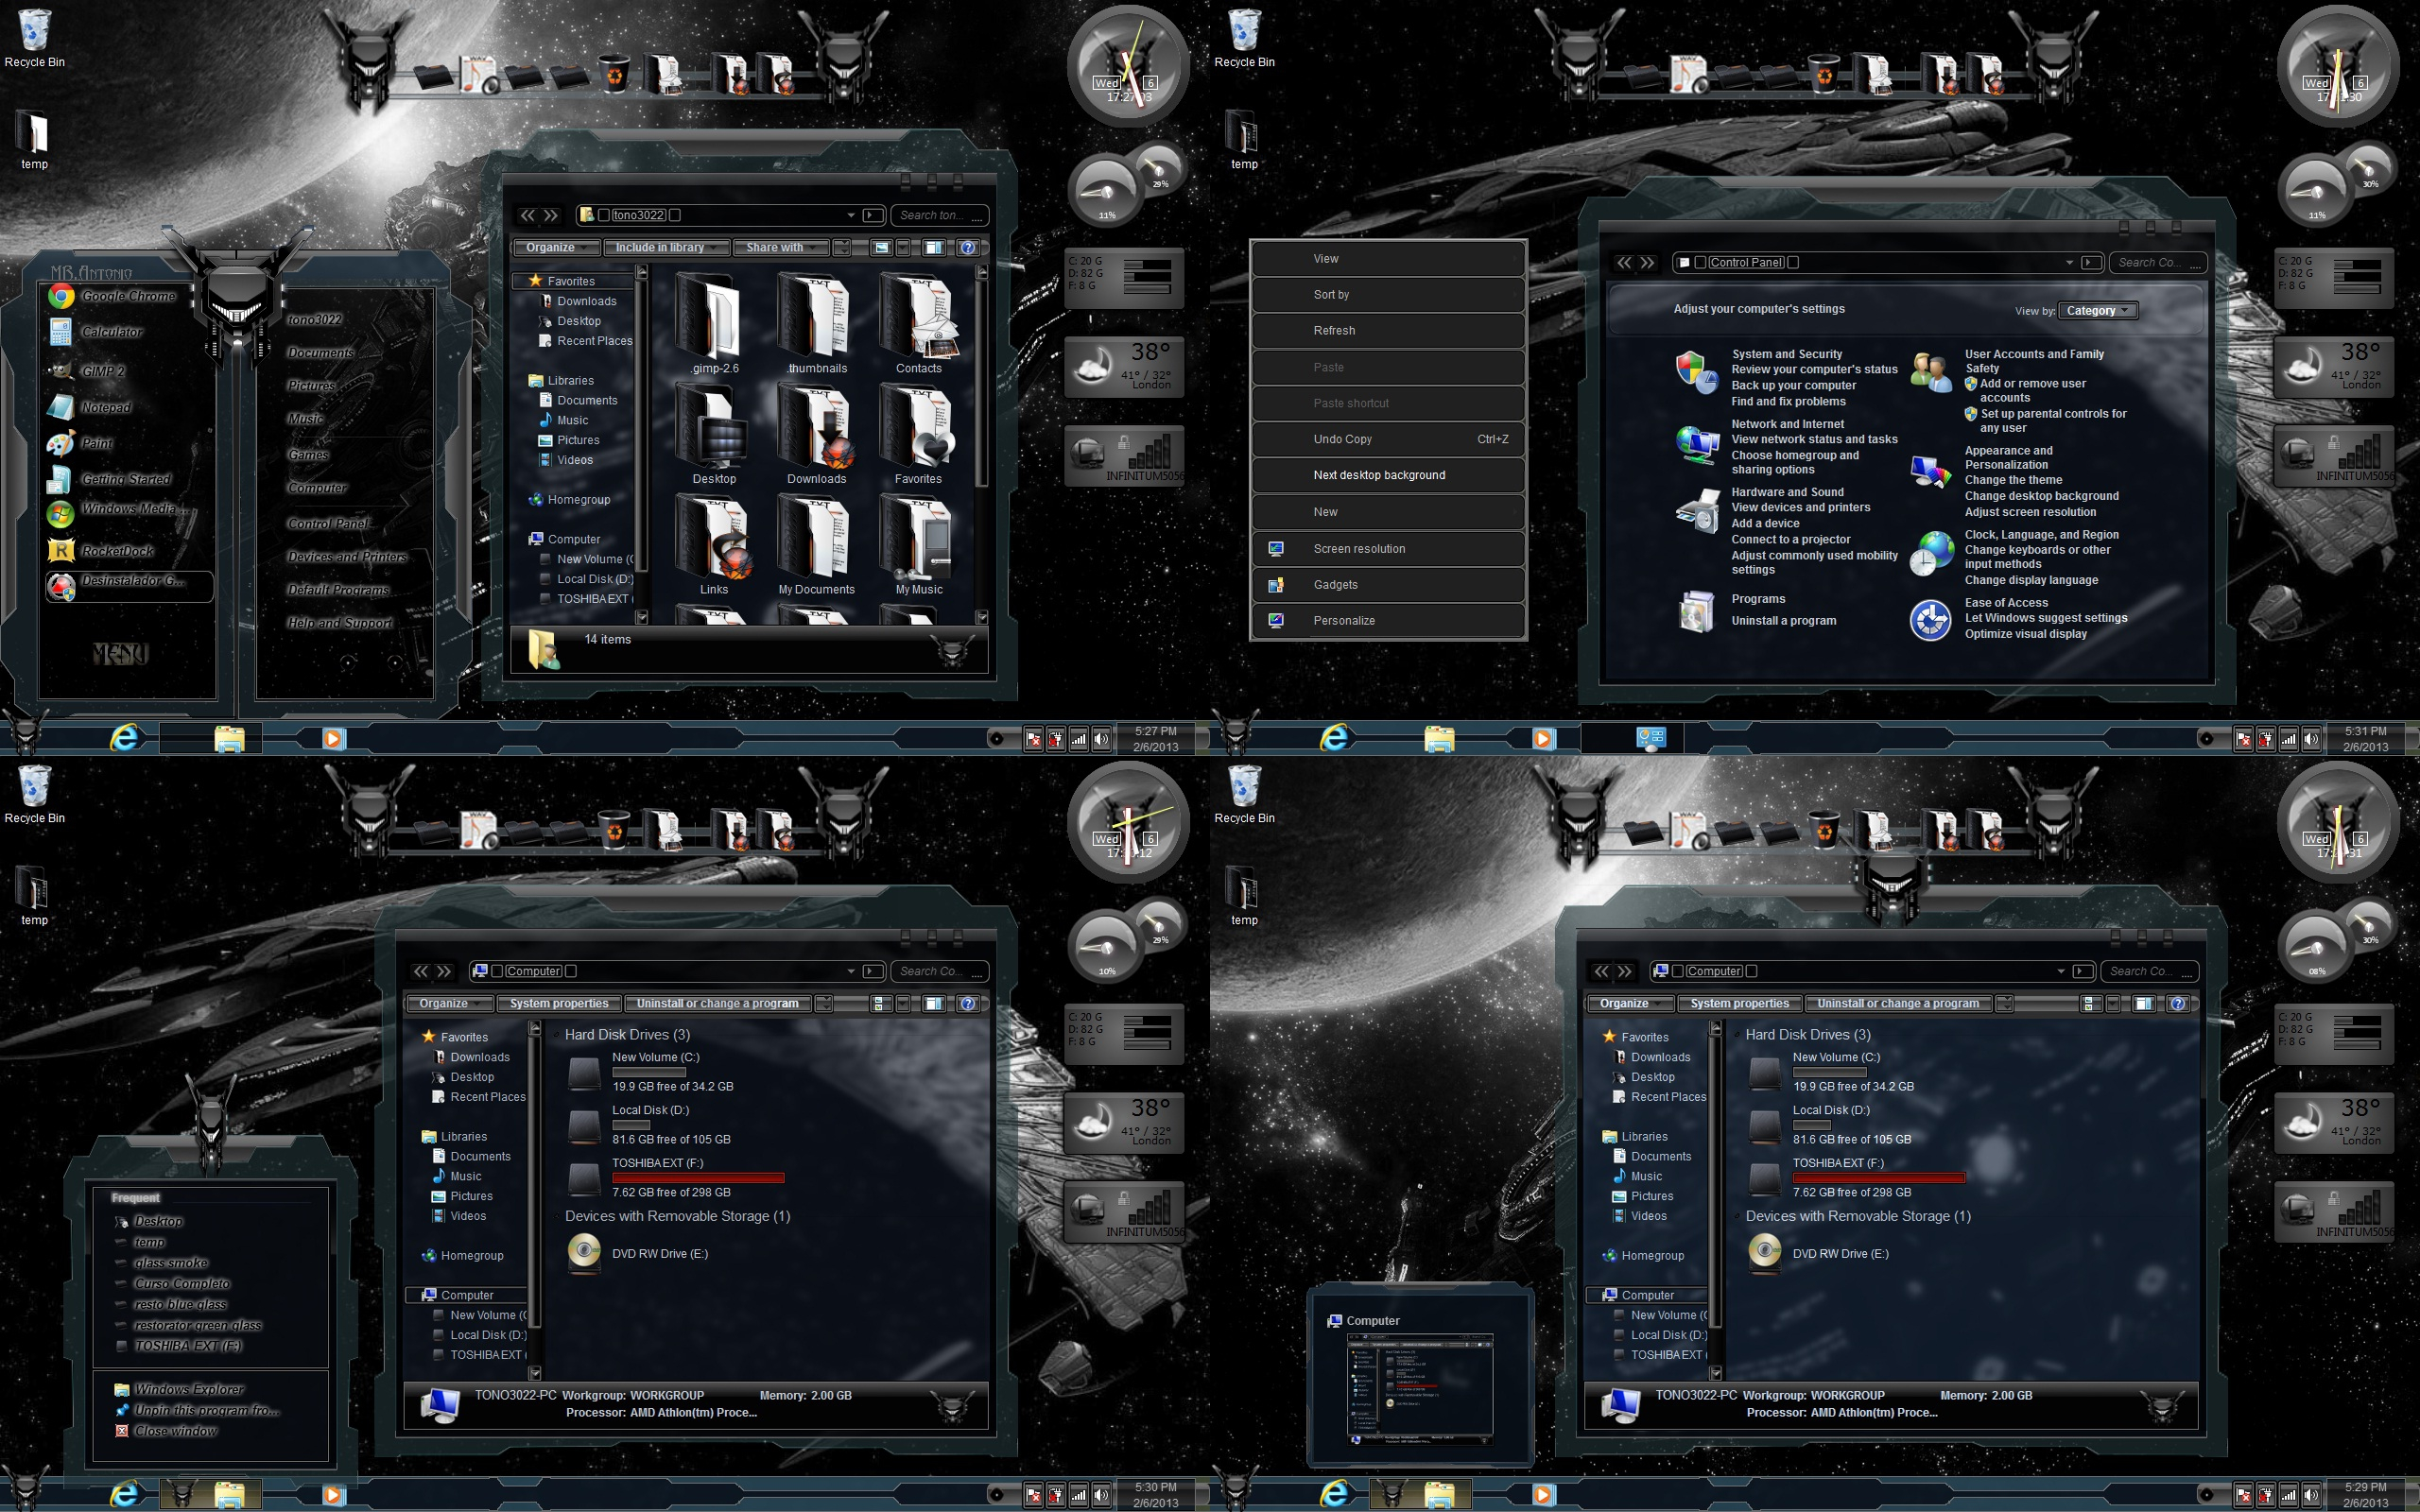 Windows 7 themes glass black by customizewin7 on deviantart for Window 07 themes